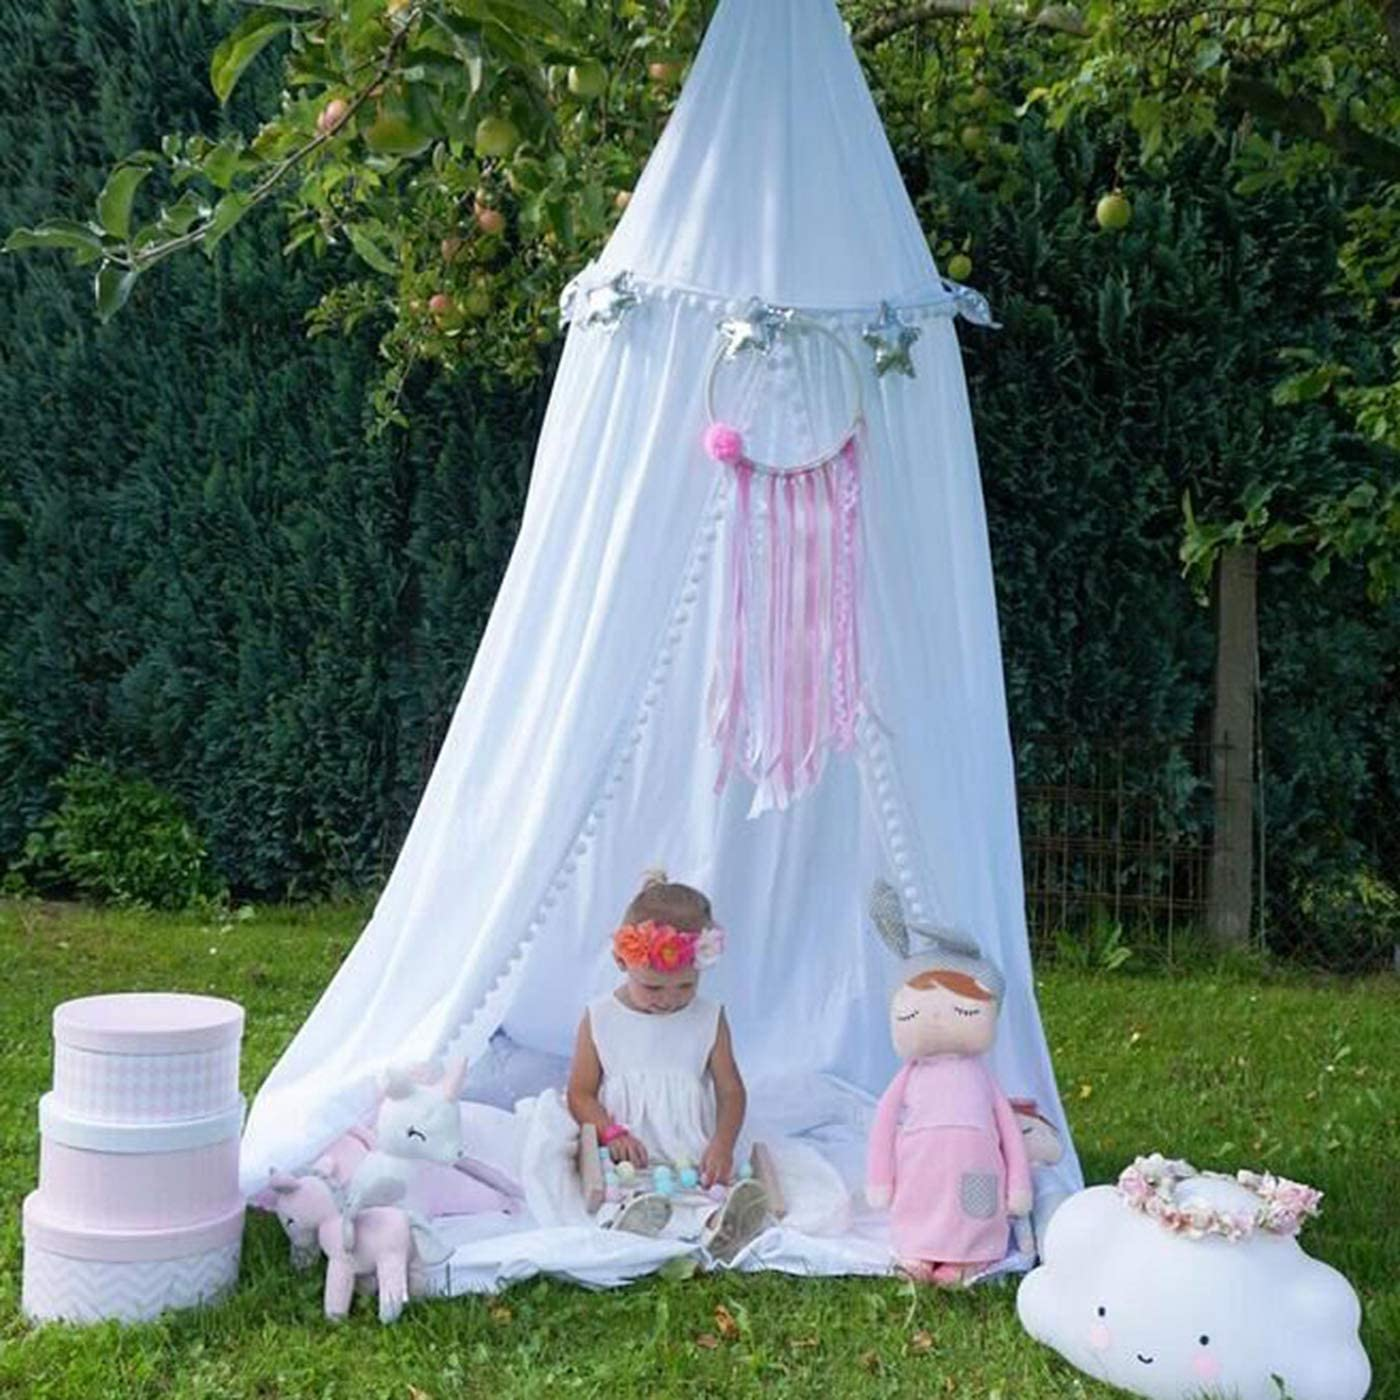 BAIHUODRESS Bed Canopy for Children Round Dome Cotton Mosquito Net Kids Princess Play Tents Room Decoration Indoor Outdoor Playing Games House Reading//Crib Nook Height 245cm//96.5